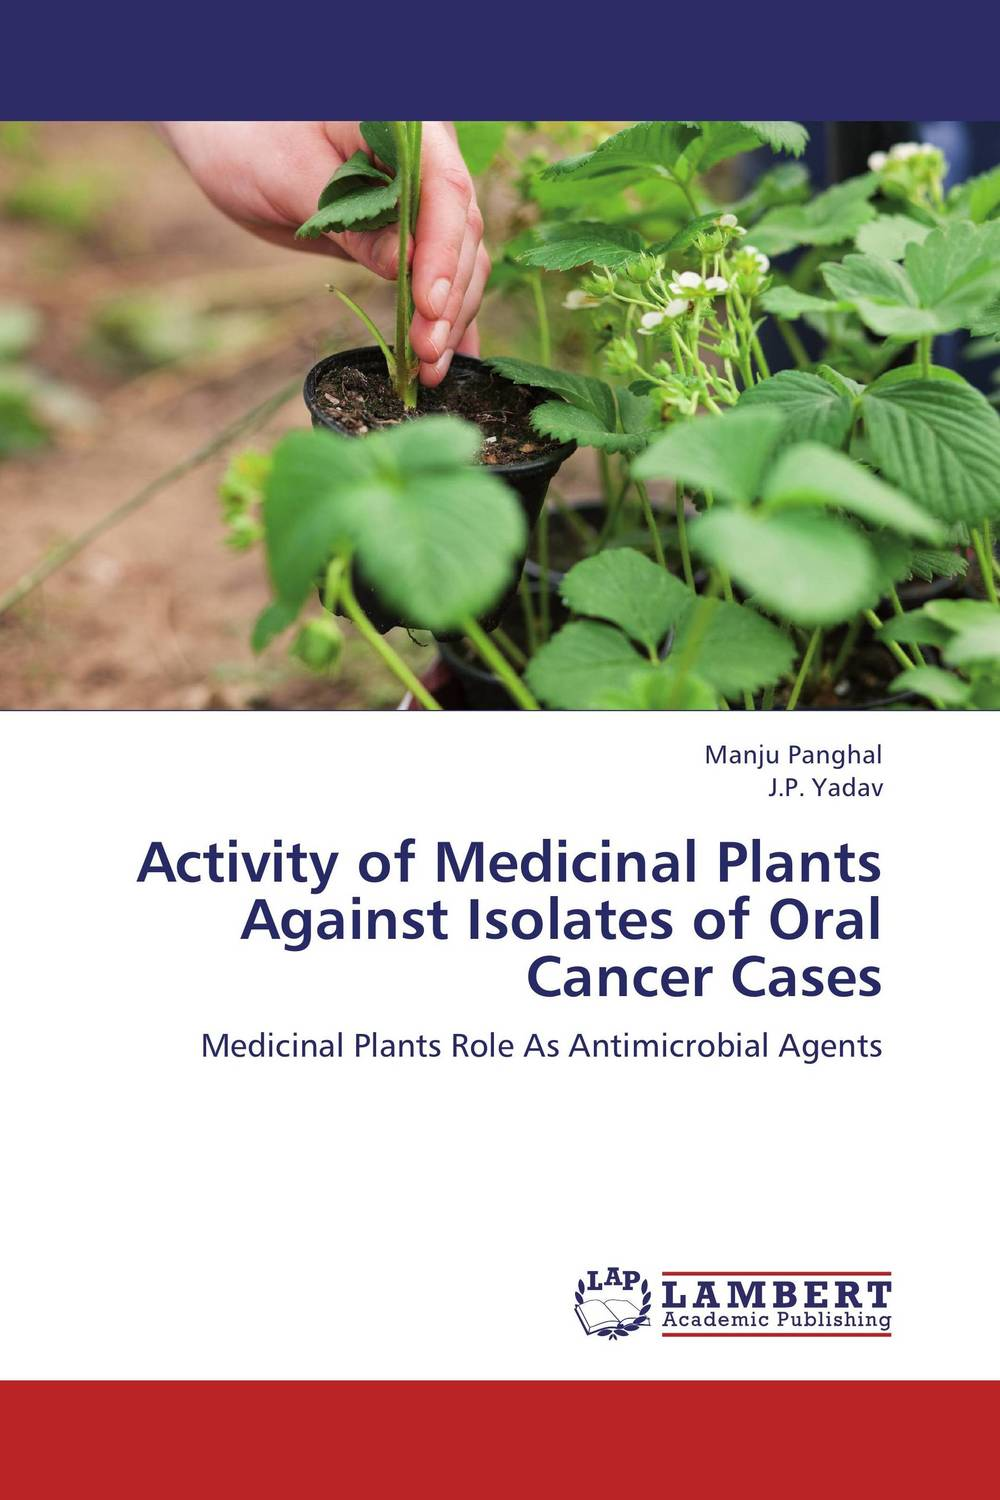 Activity of Medicinal Plants Against Isolates of Oral Cancer Cases peter lockhart b oral medicine and medically complex patients